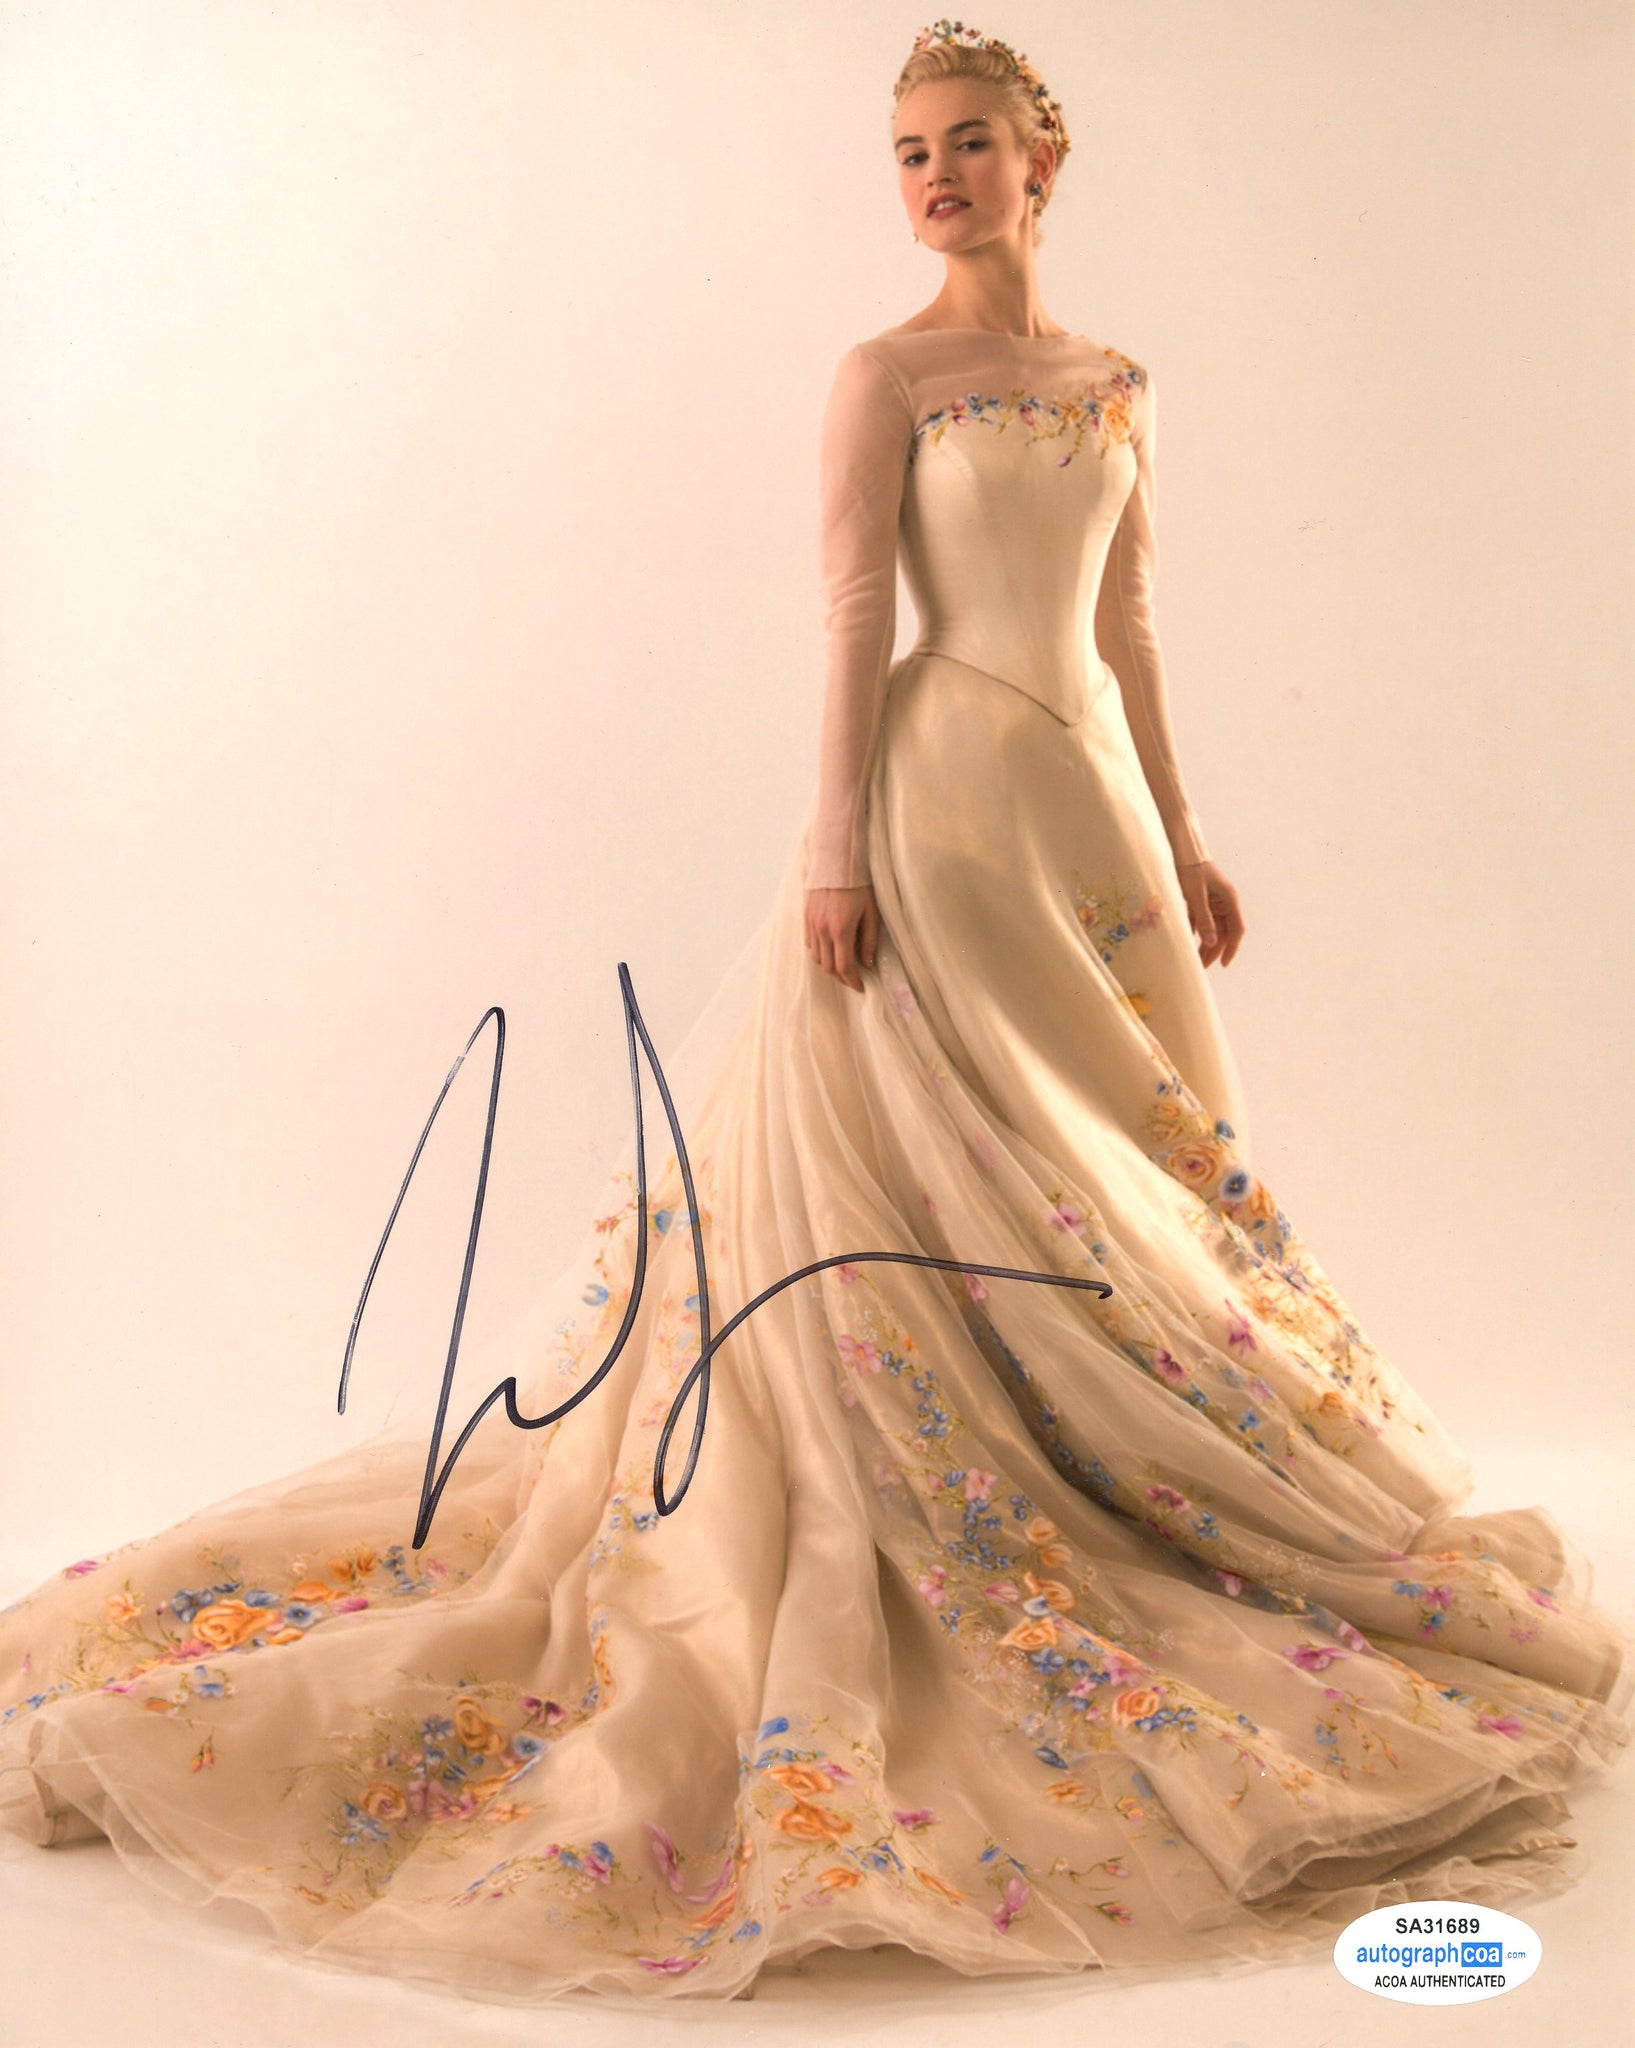 Lily James Cinderella Signed Autograph 8x10 Photo ACOA #11